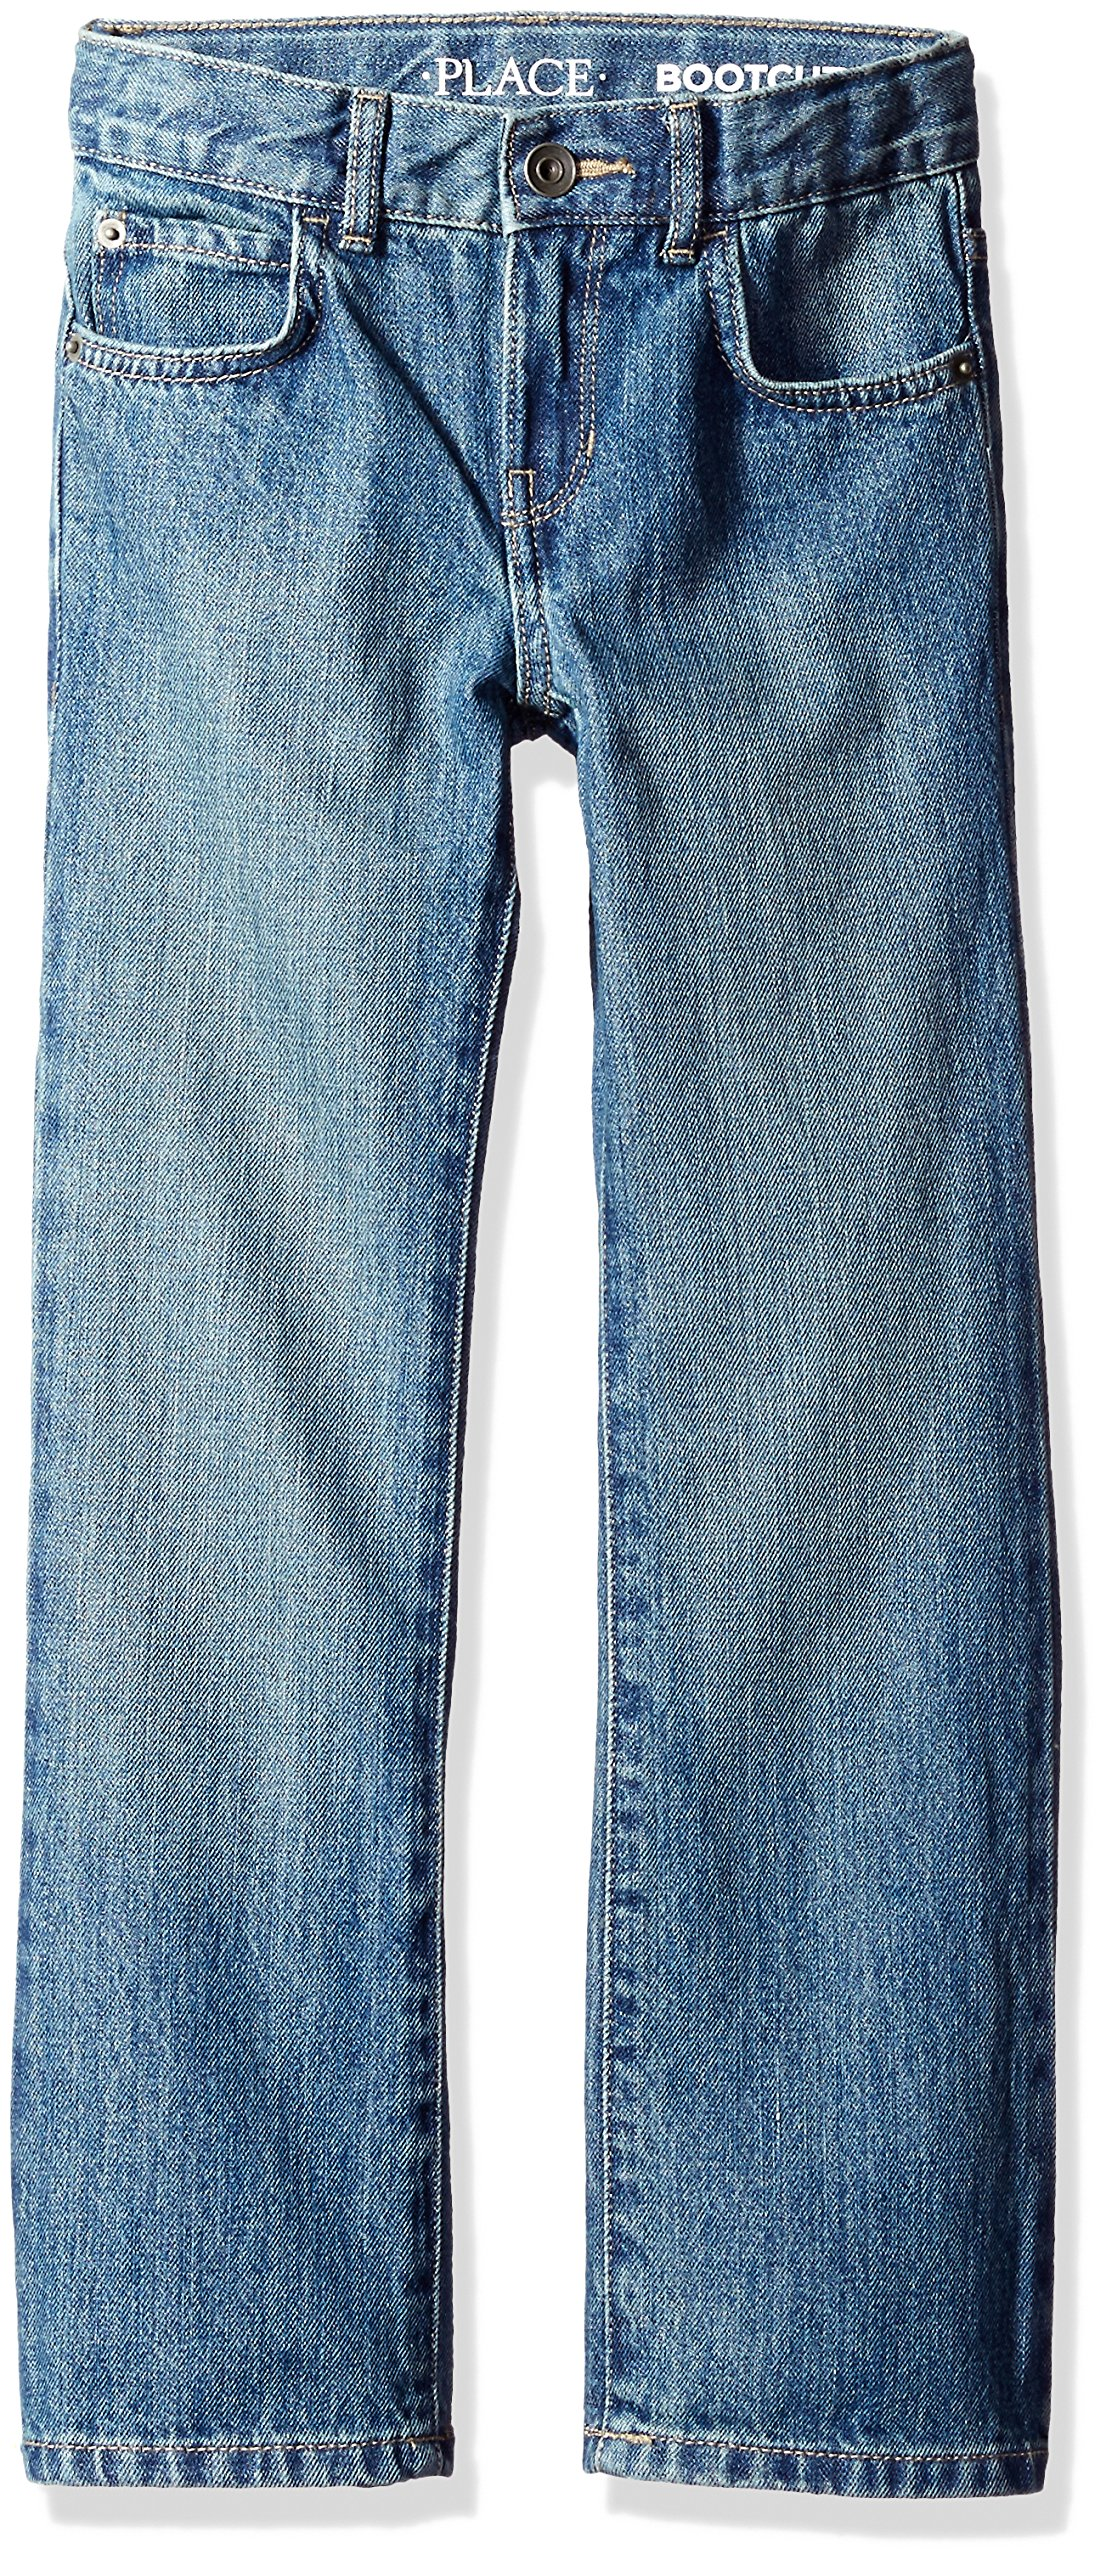 The Children's Place Boys Size Bootcut Jeans, River 5700, 10 Slim